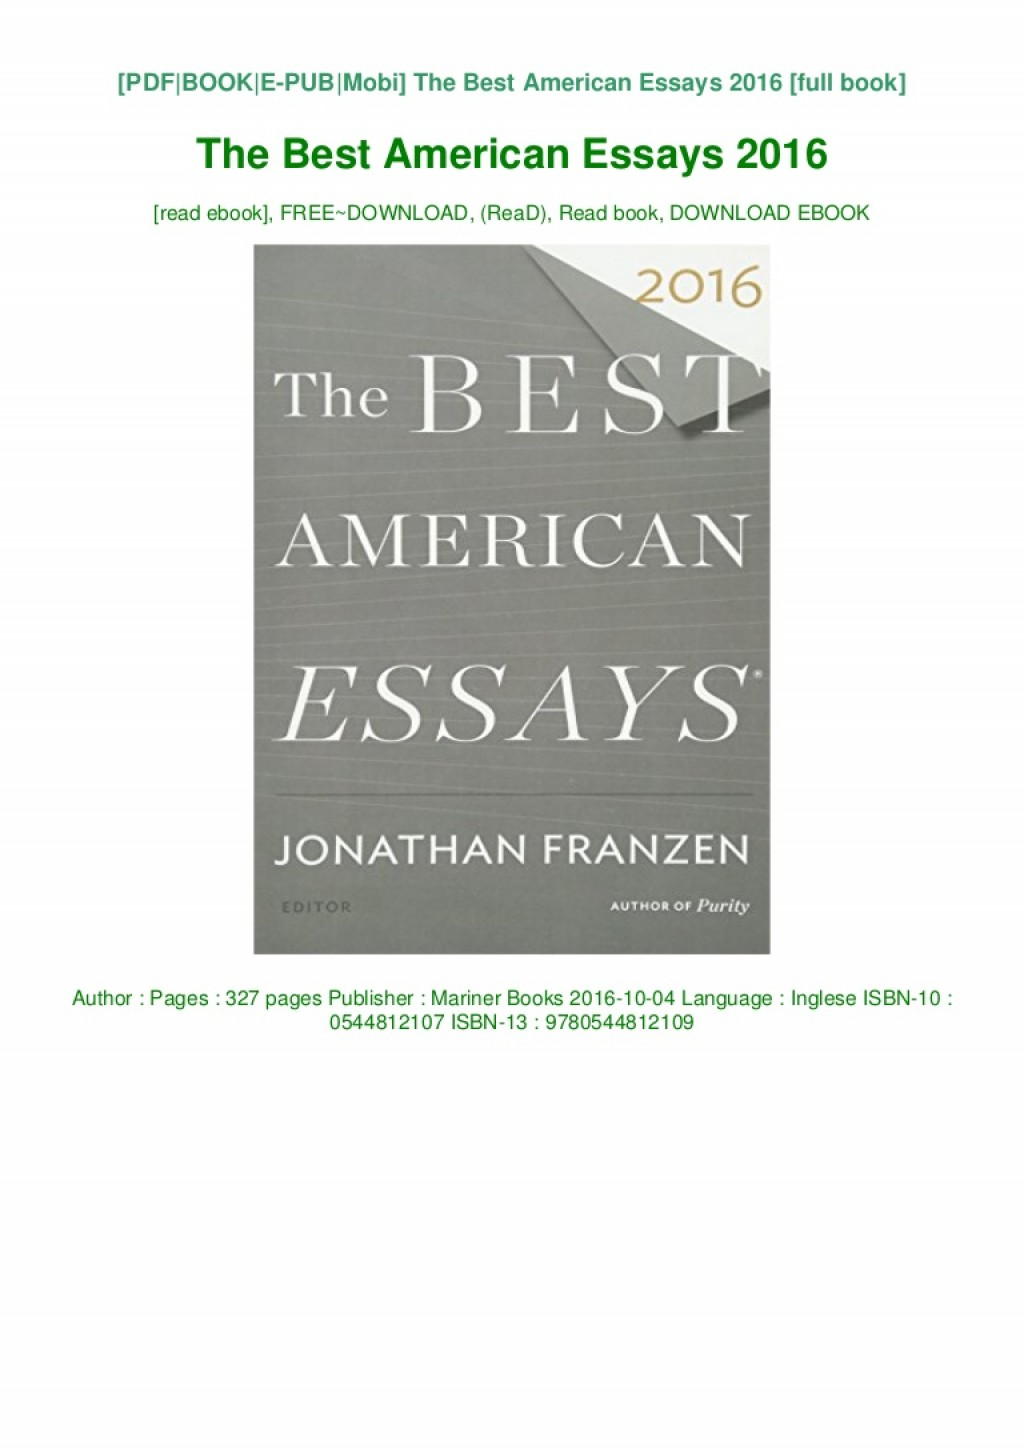 013 Download The Best American Essays Pdf Epub Audiobook Ebook Thumbnail Essay Striking 2017 Table Of Contents Century Large